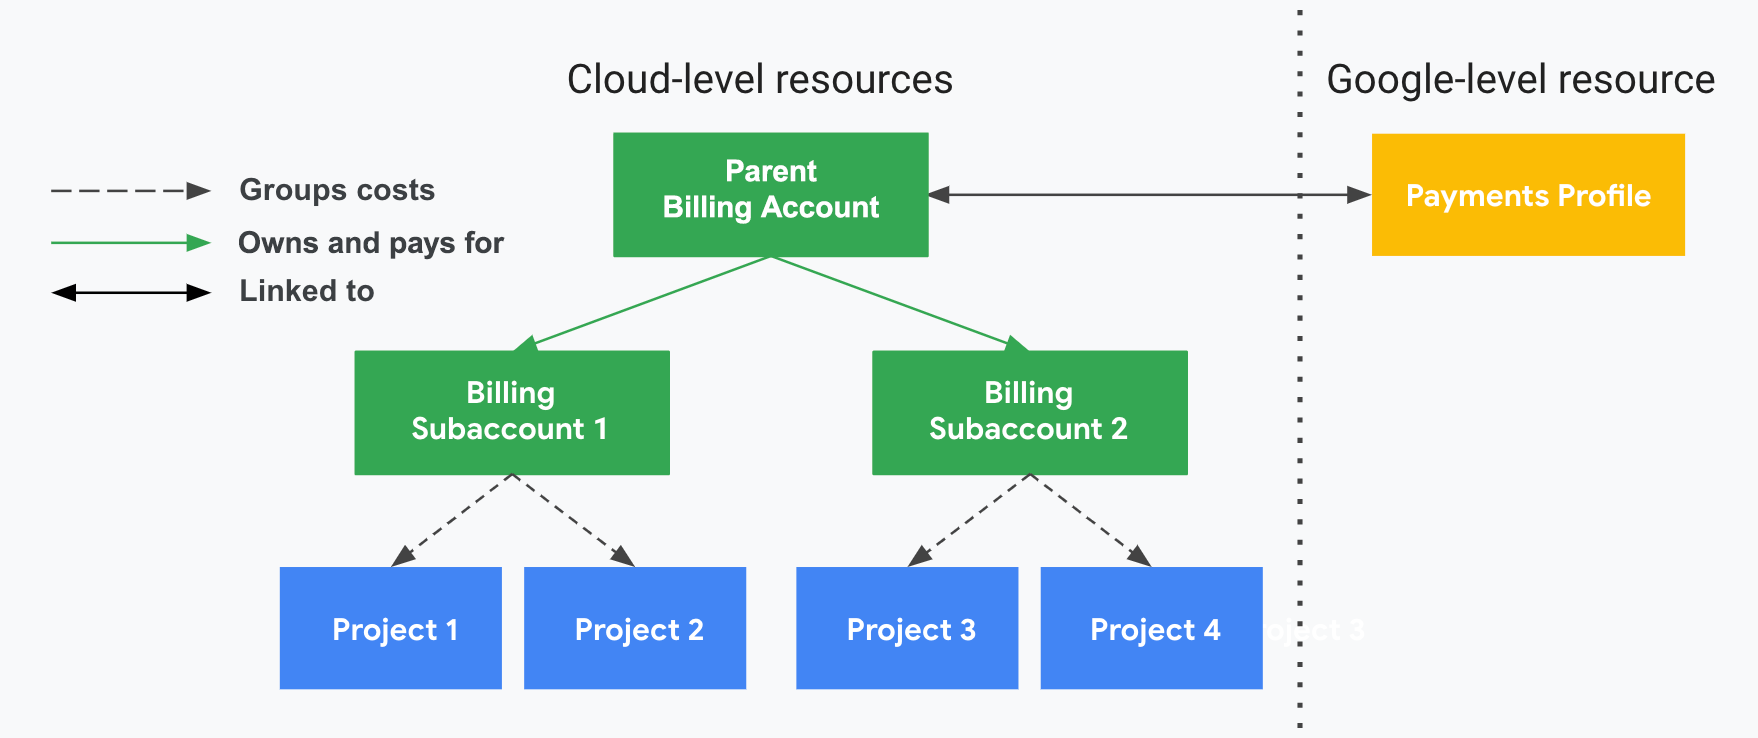 Describes how projects relate to Cloud Billing accounts,          Cloud Billing subaccounts, and your payments profile. One side          shows your Cloud-level resources (Cloud Billing account,          subaccounts, and associated projects) and the other side, divided by a          vertical dotted line, shows your Google-level resource (a          payments profile). Project usage costs are grouped and subtotalled by          the associated Cloud Billing subaccounts. Subaccounts are paid          for by the reseller's parent Cloud Billing account, which is          linked to your payments profile.